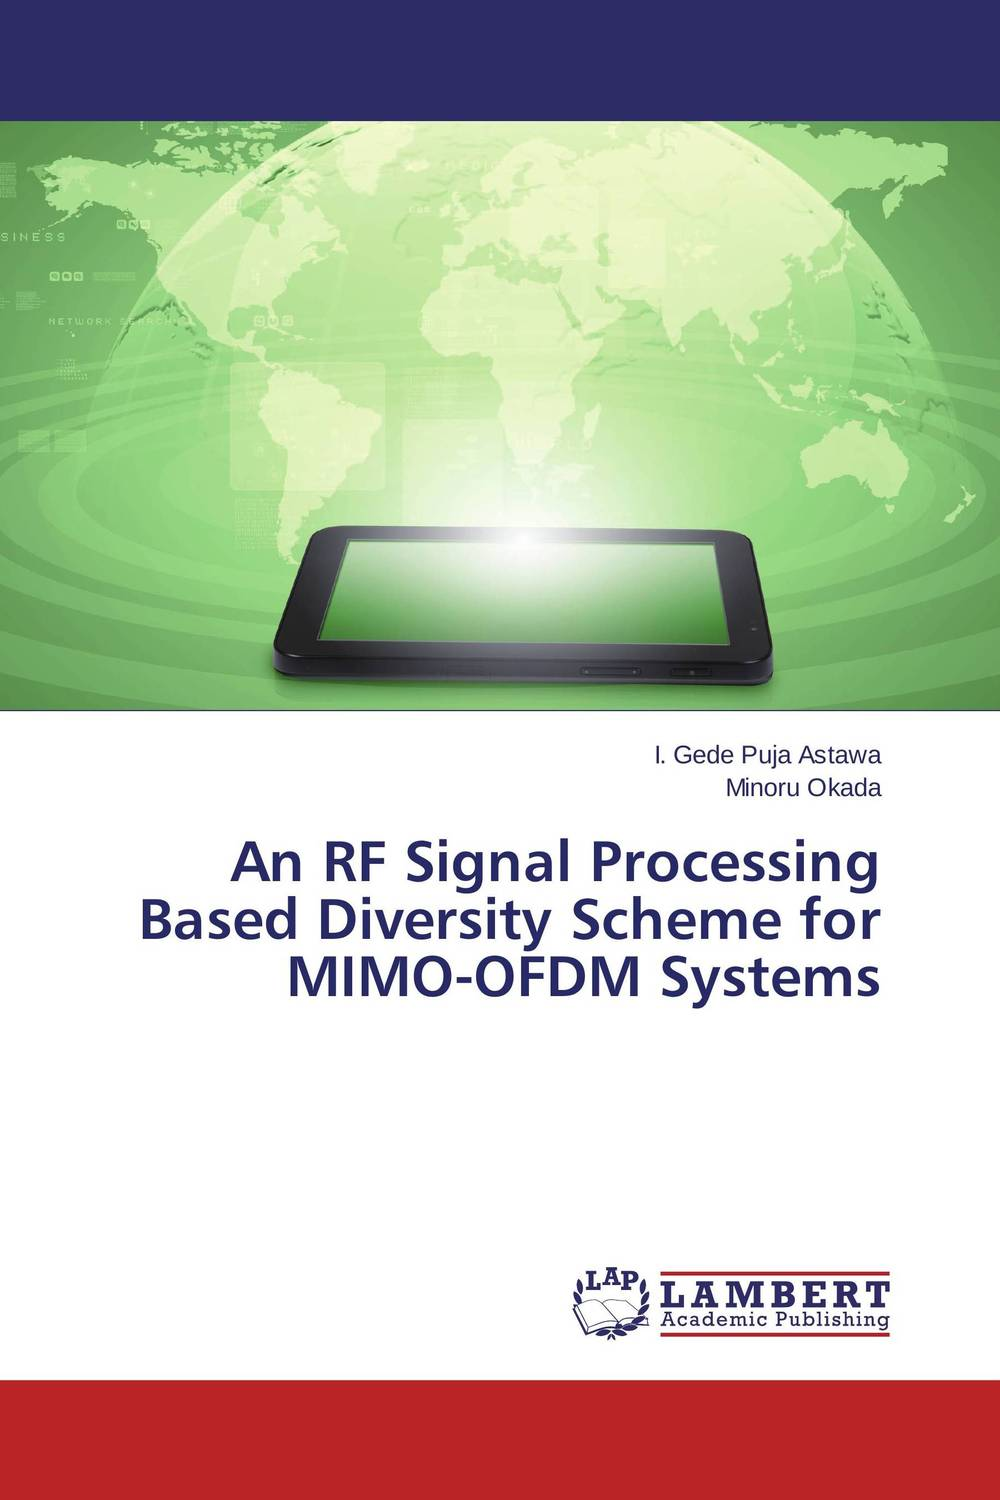 An RF Signal Processing Based Diversity Scheme for MIMO-OFDM Systems wireless ofdm and mimo ofdm communications